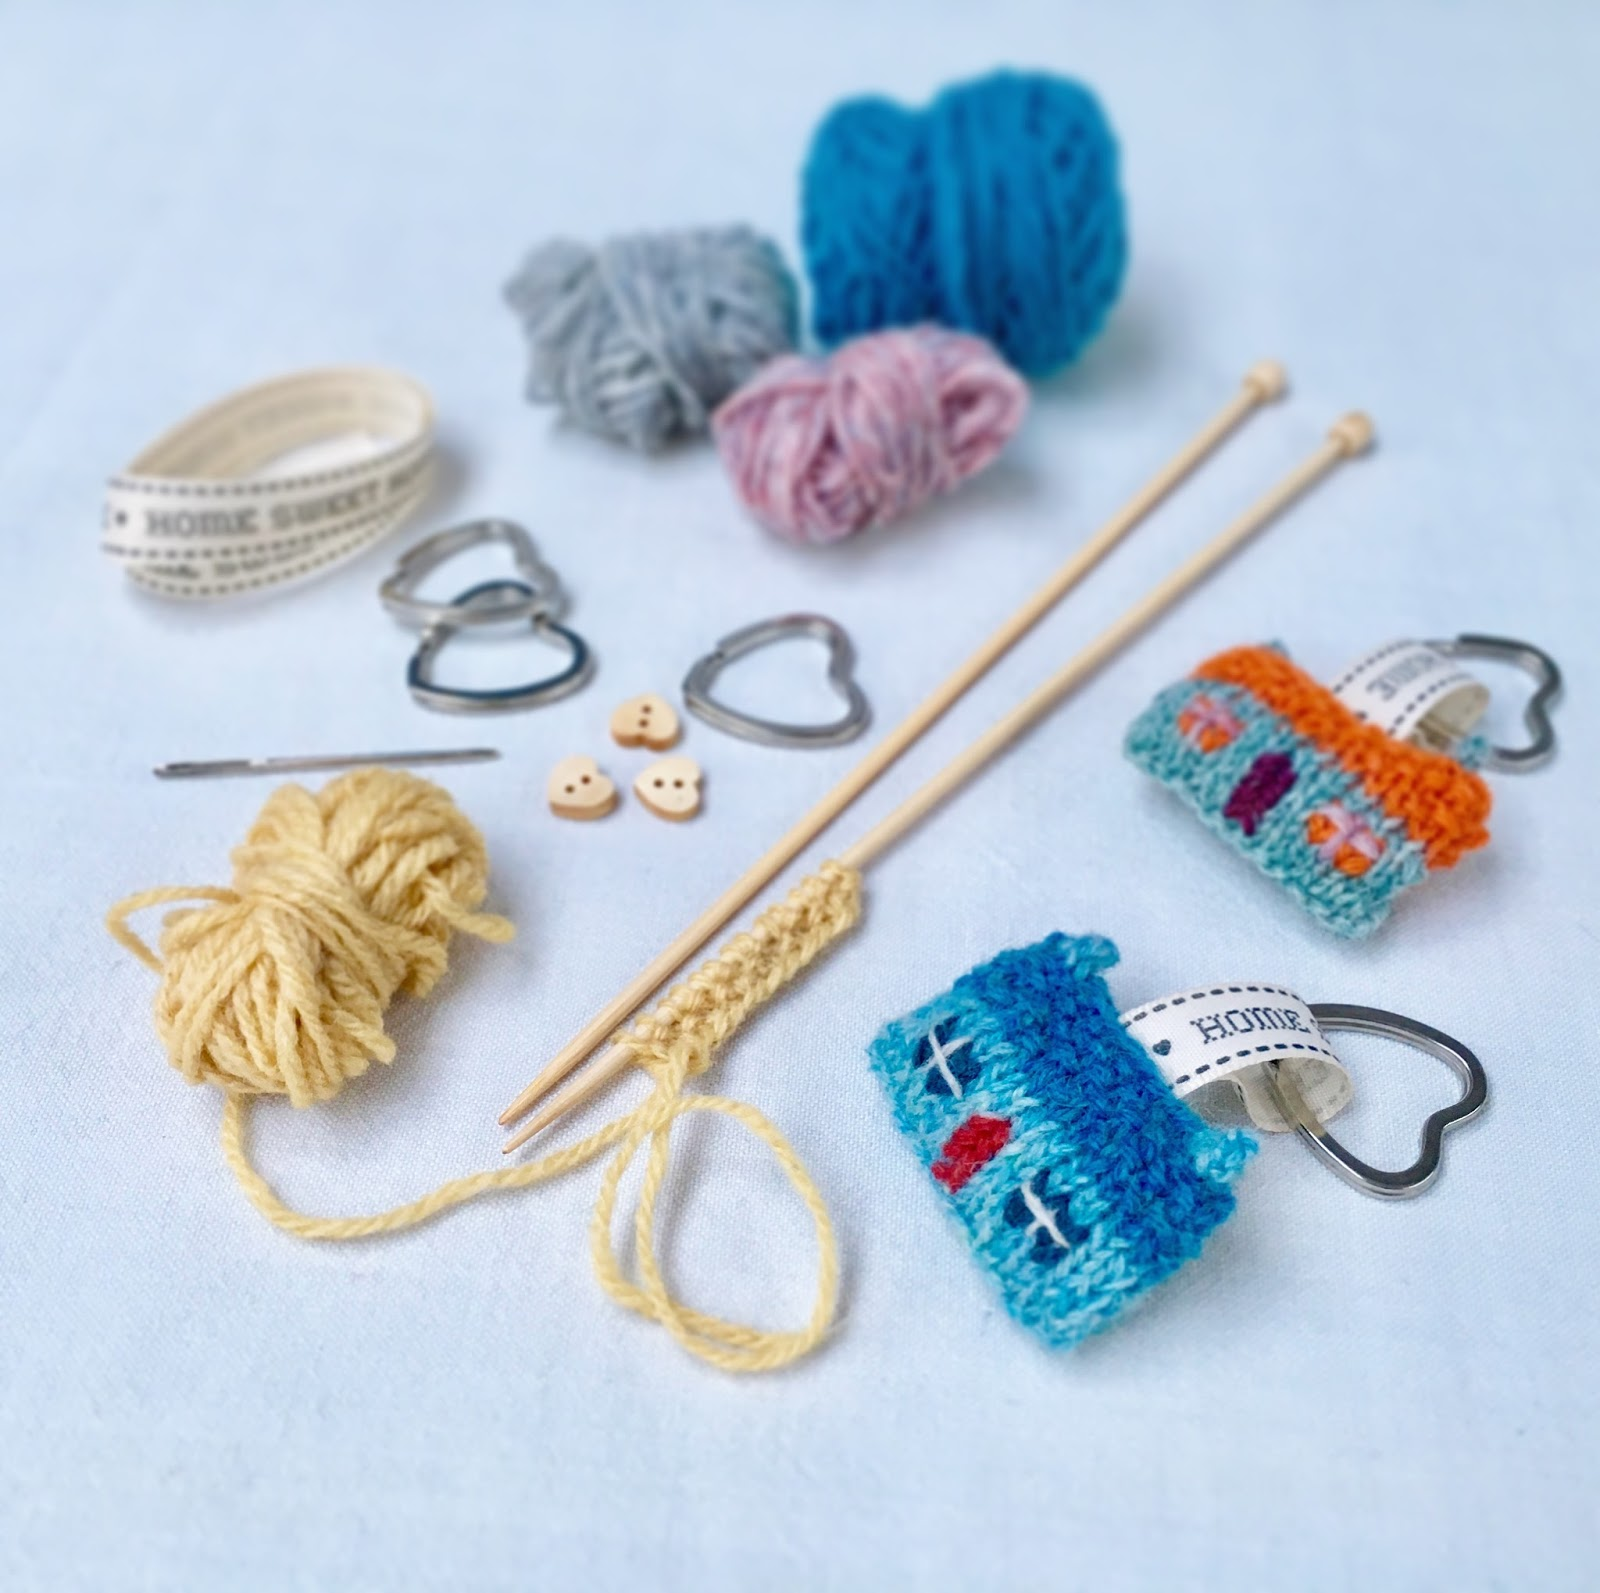 things has slightly key gift brooch on differently knitting and knitted needles the tiny similar been with are embellishments in sewn design constructed underway rings straight img hand but